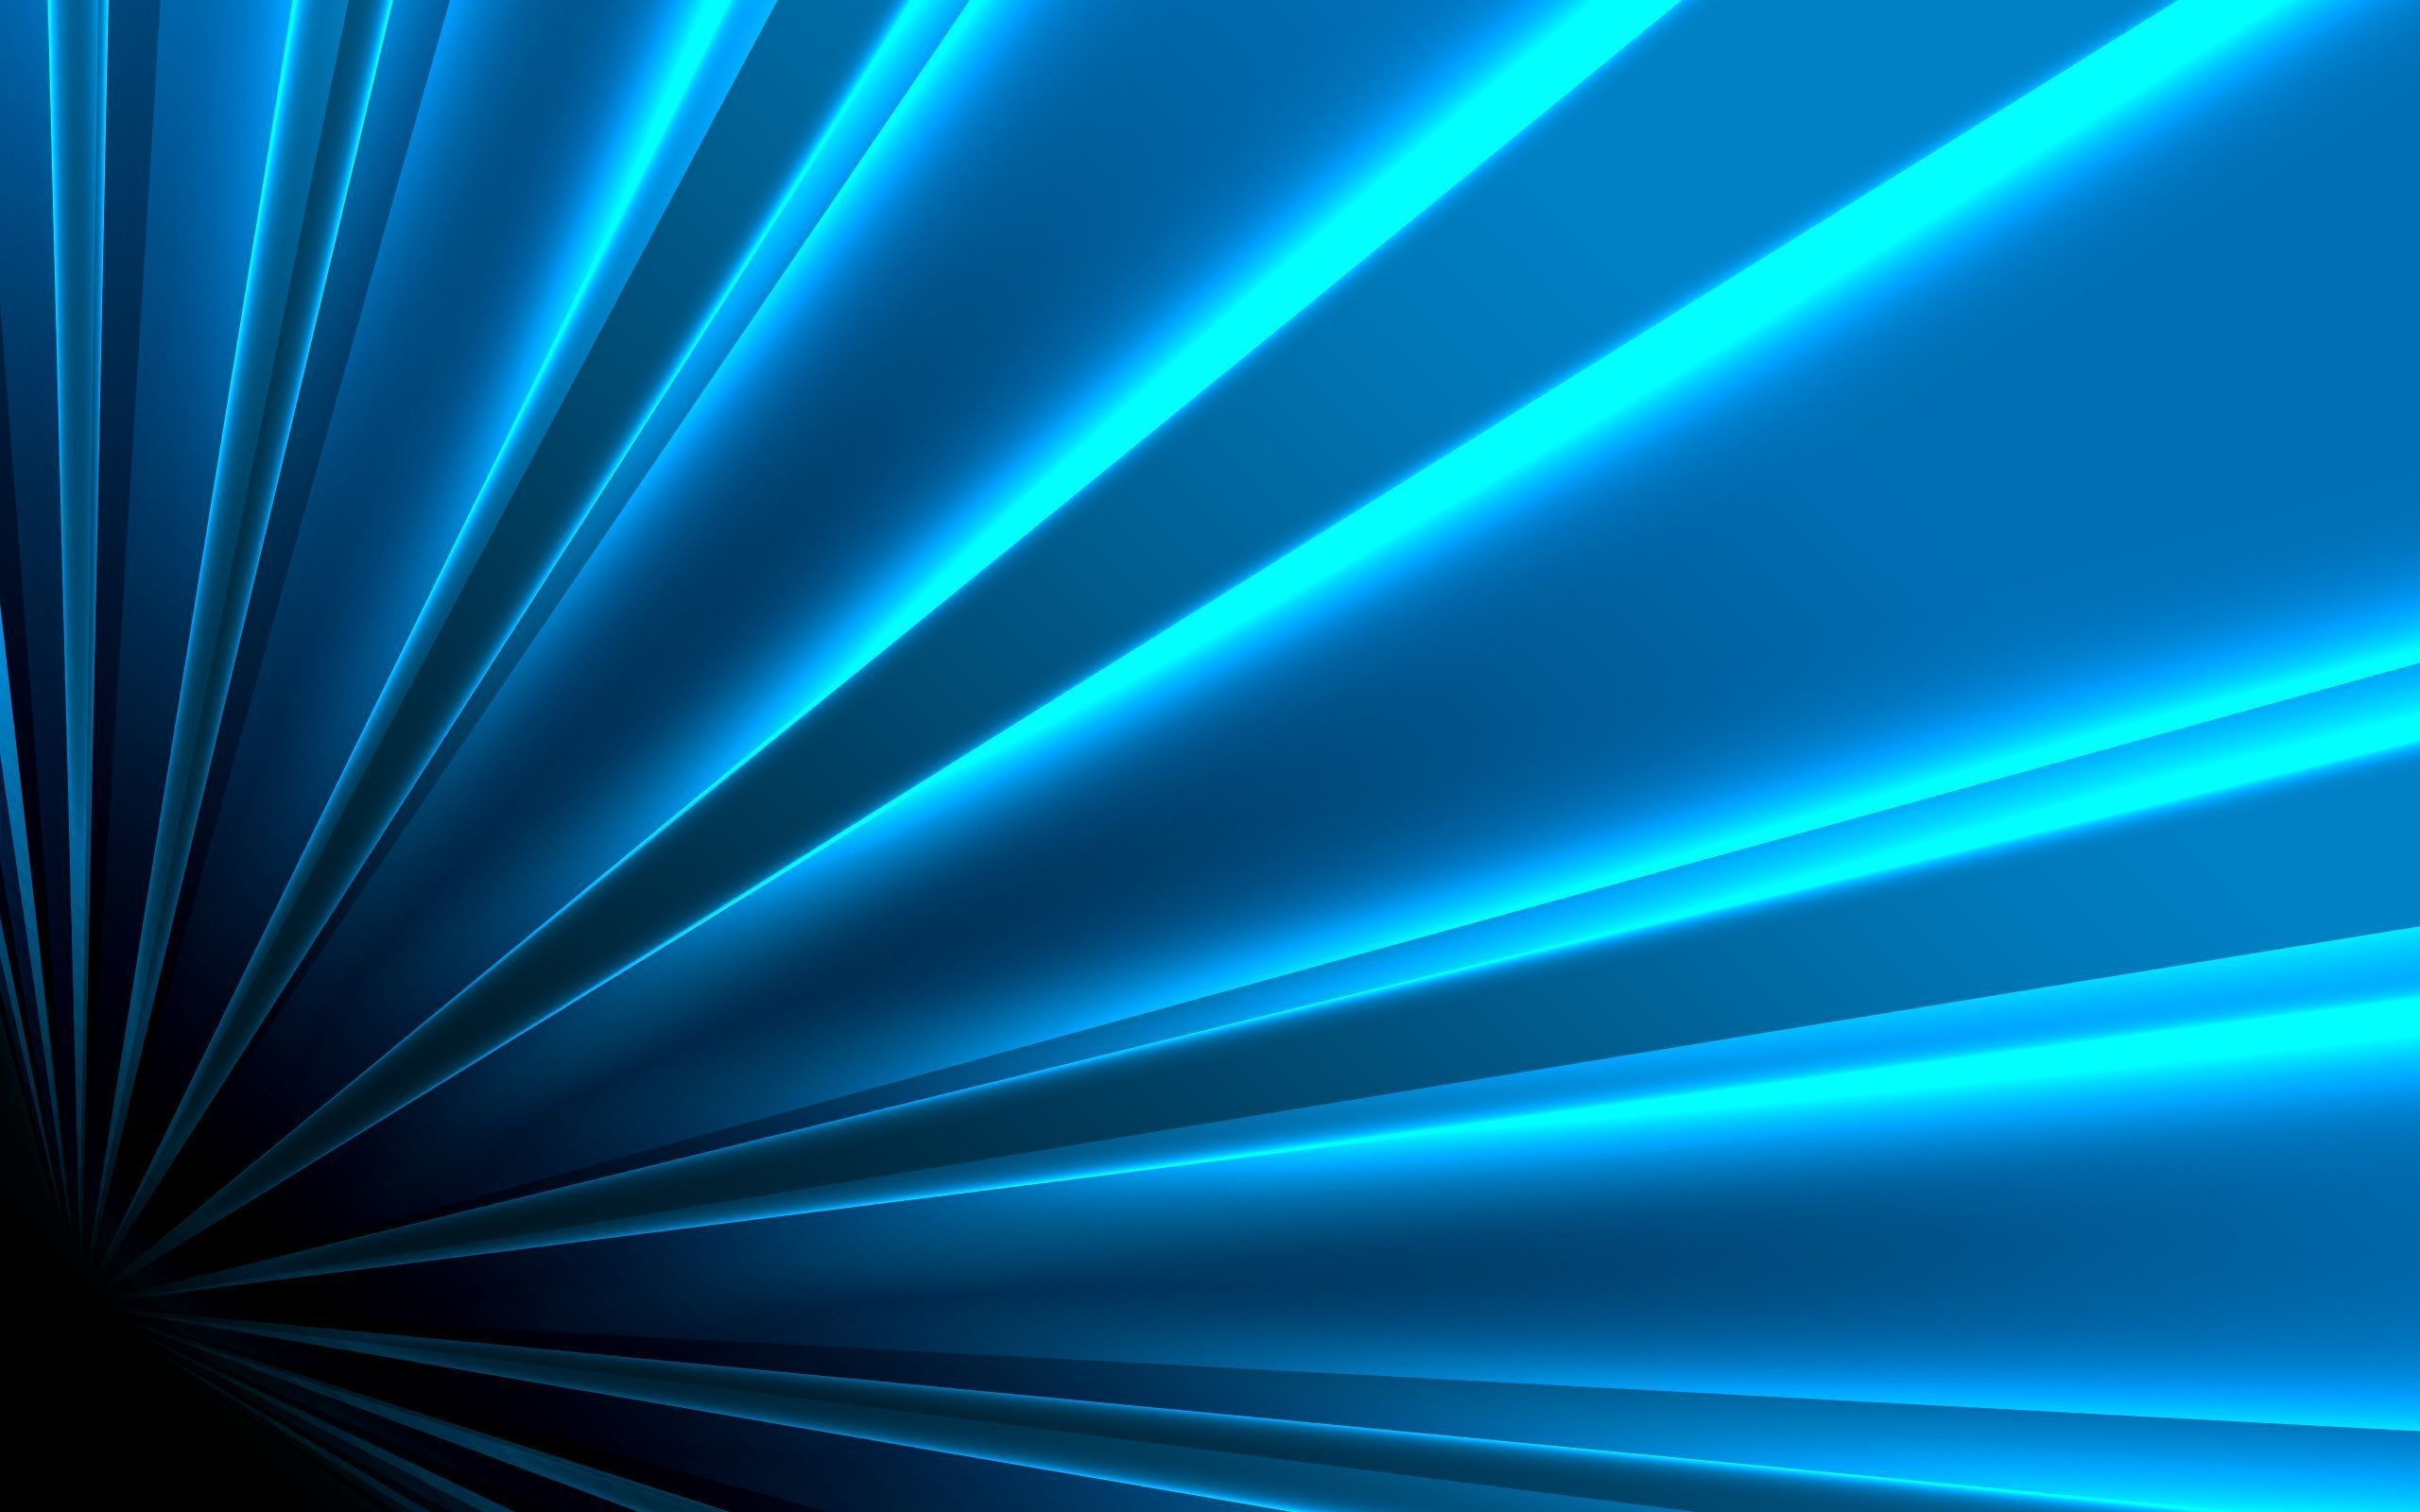 Abstract Wallpaper, Line, Band, Blue, Light, Color, Creative .